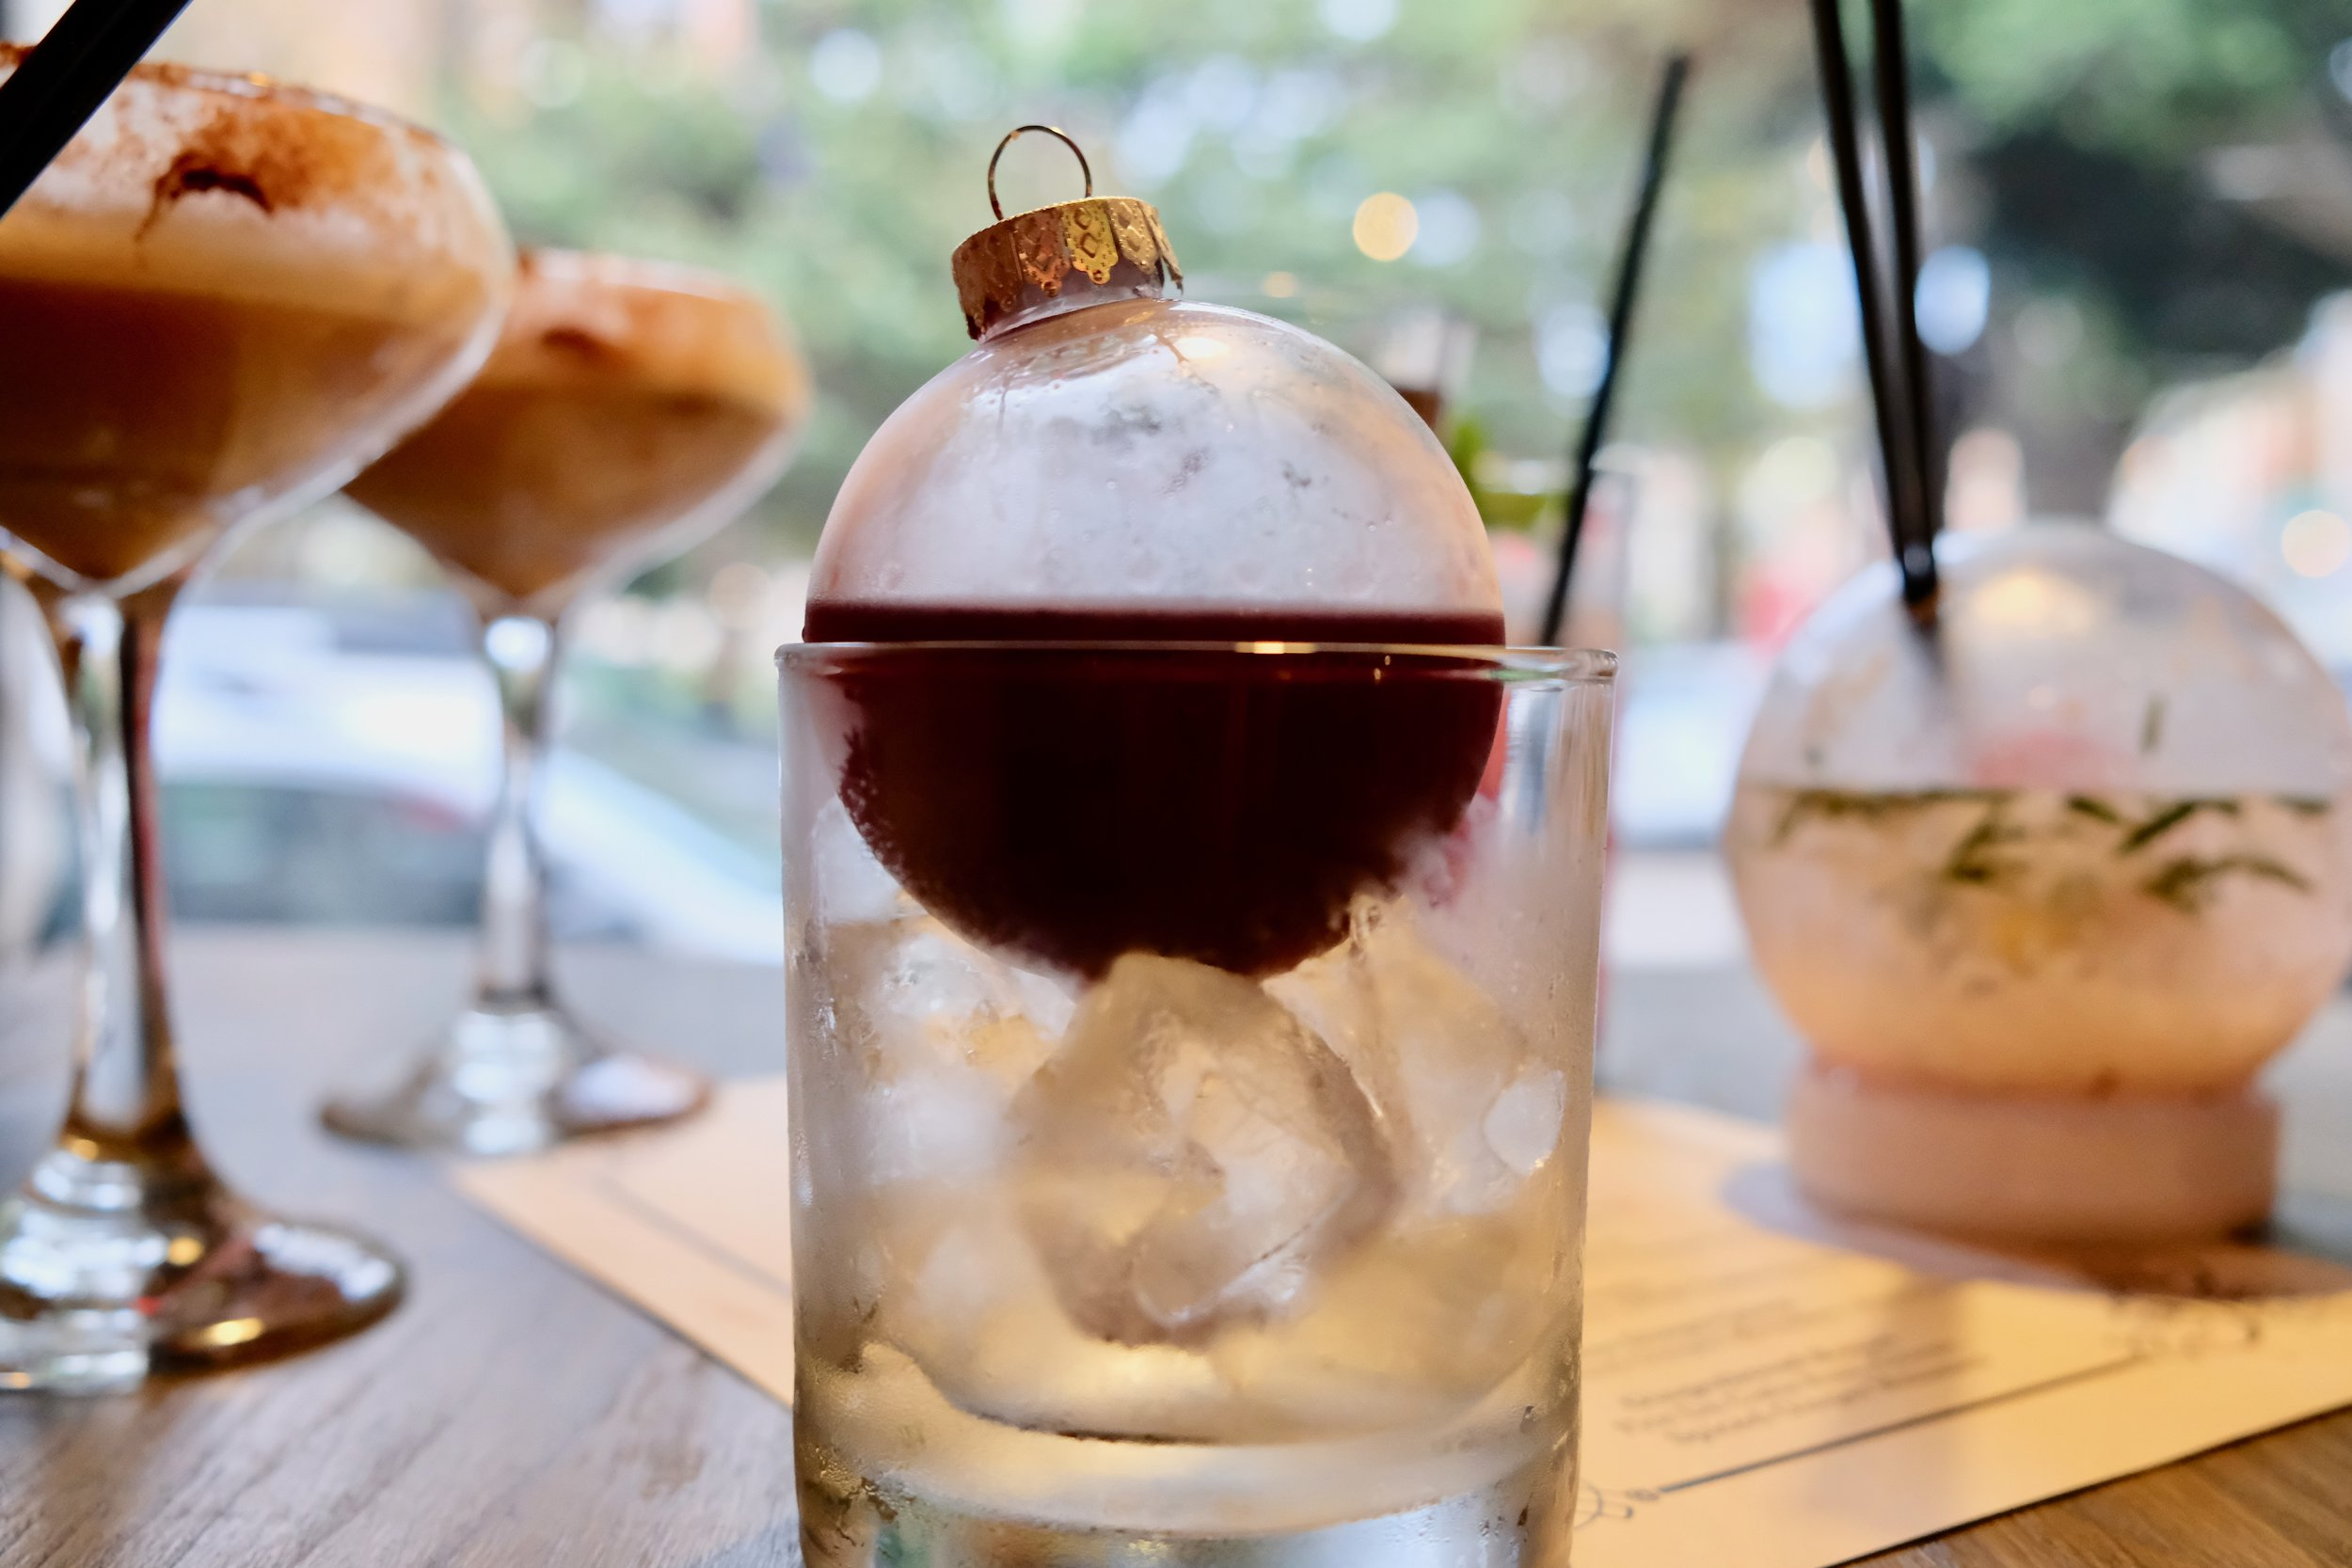 Negroni style drink  served in an ornament // Photo Credit: The Buttery Existence / Cherlyn